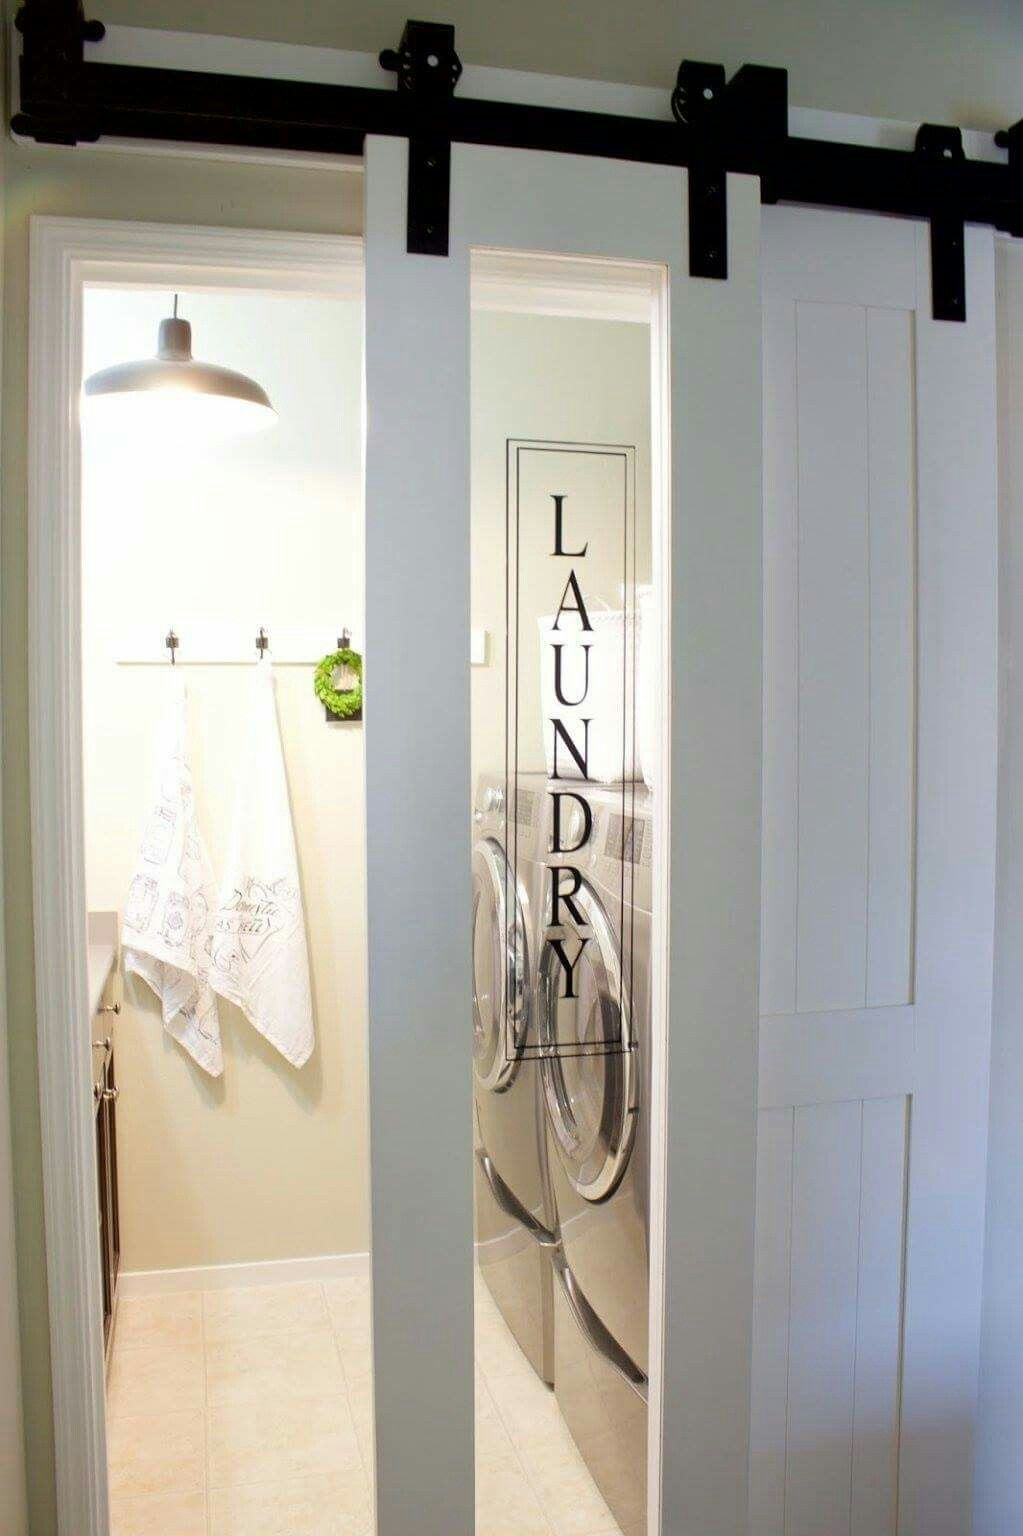 Laundry room barn door, maybe frosted ?